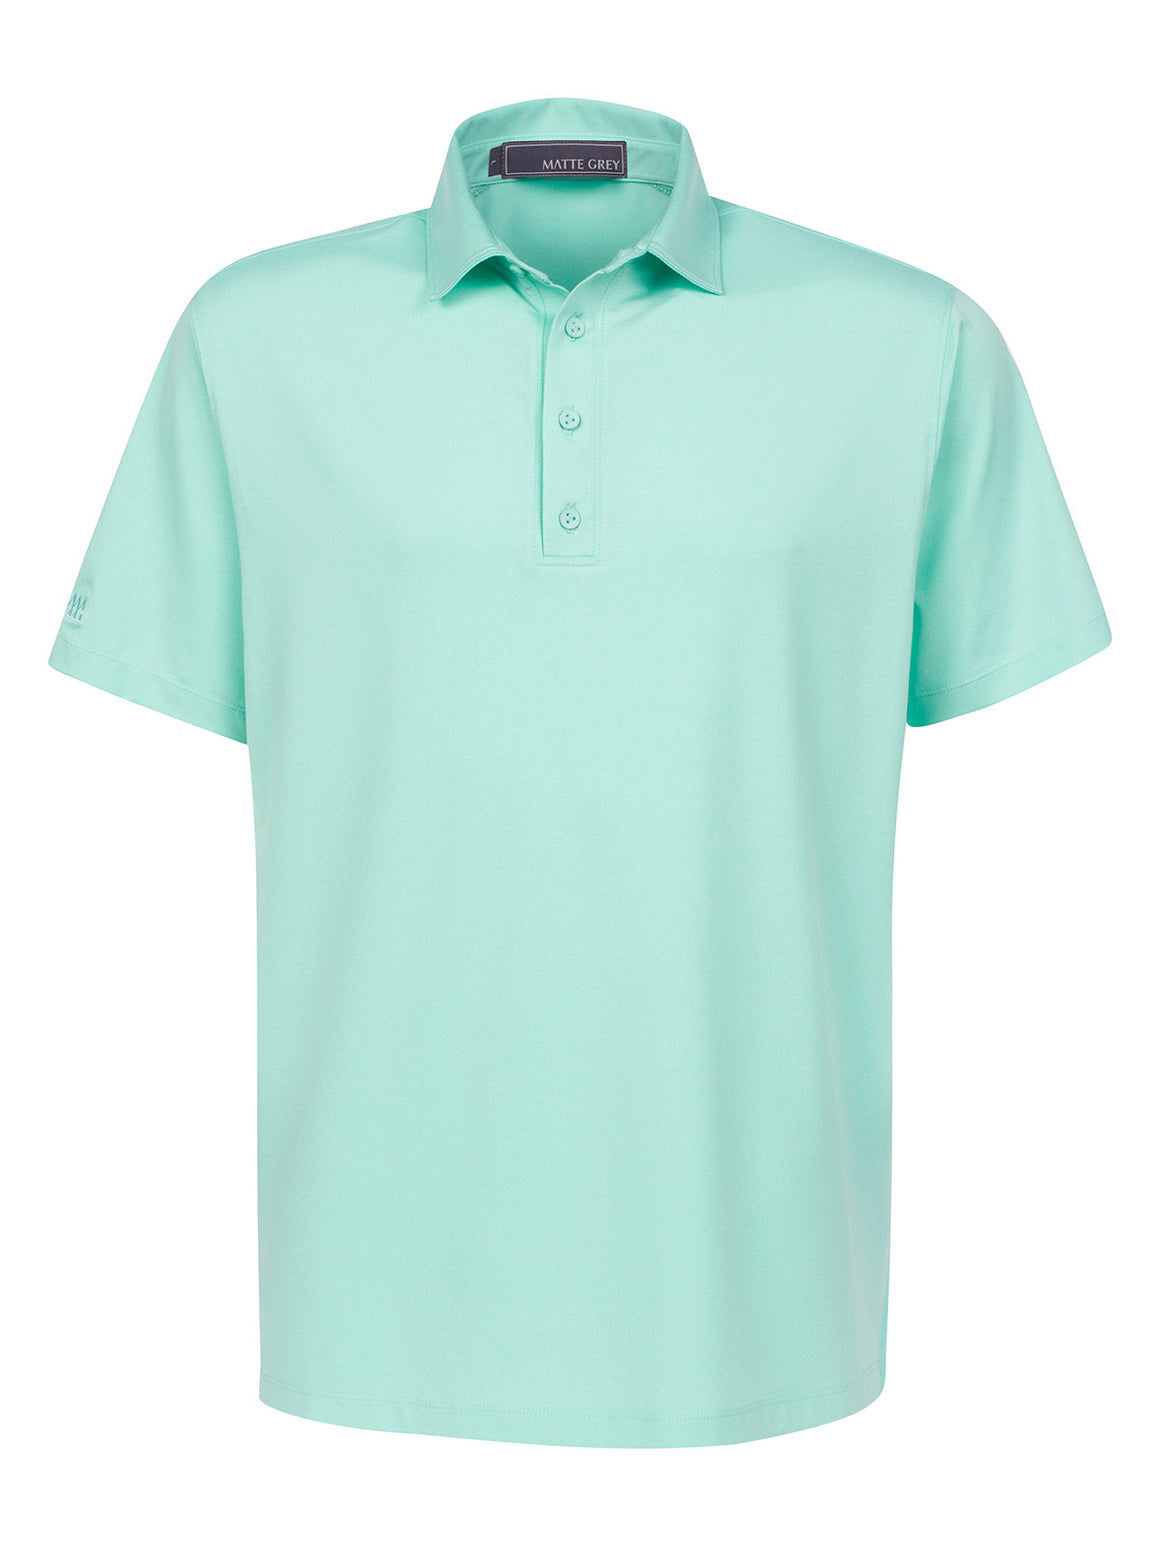 Captain - Sea Green Hea